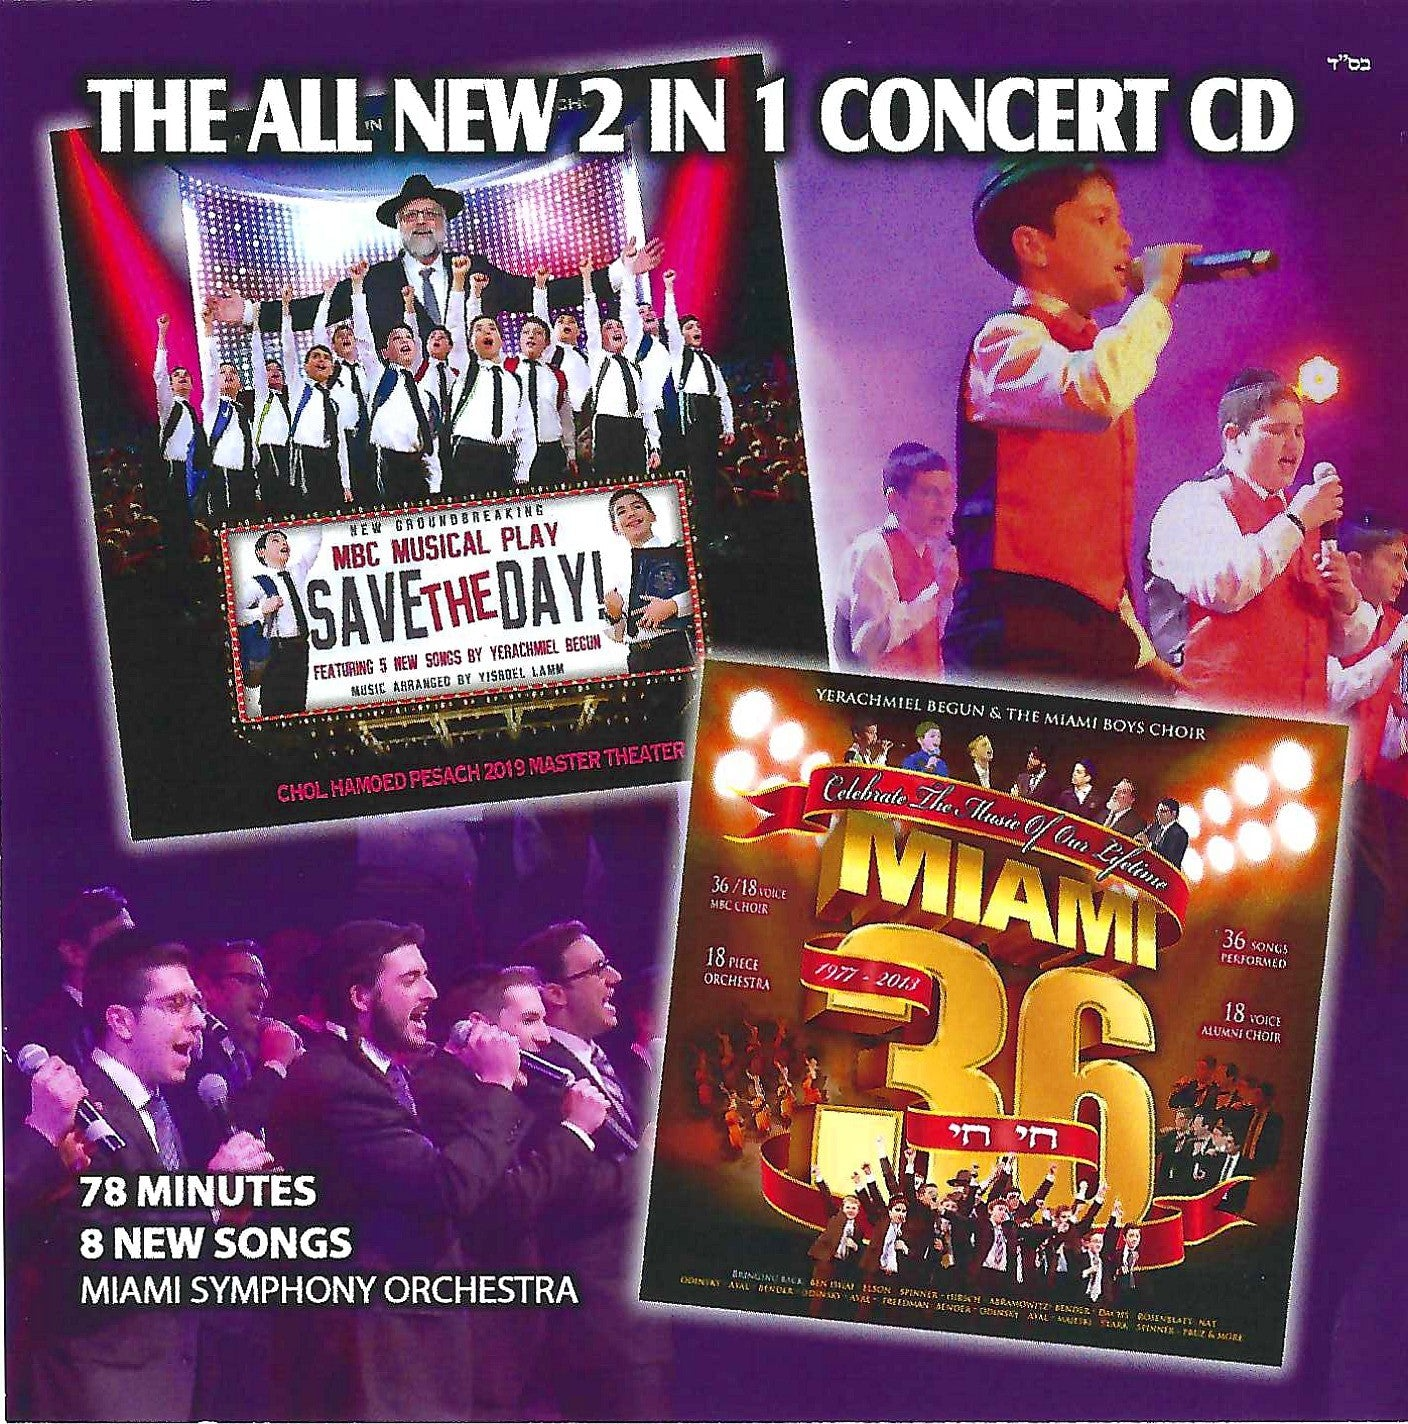 Miami - The All New 2 in 1 Concert CD